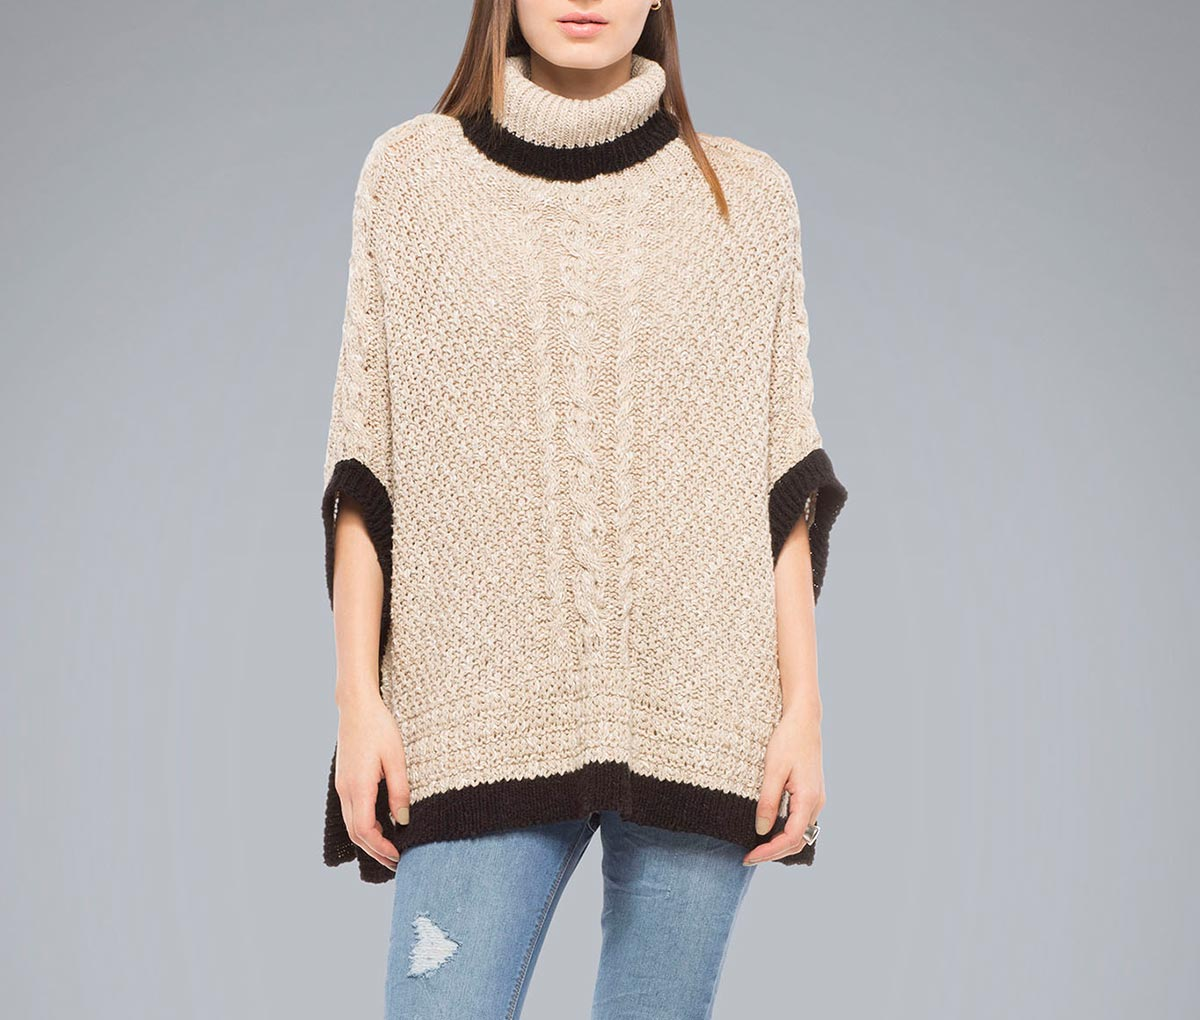 falabella-ponchos-sweaters-fashion-diaries-8